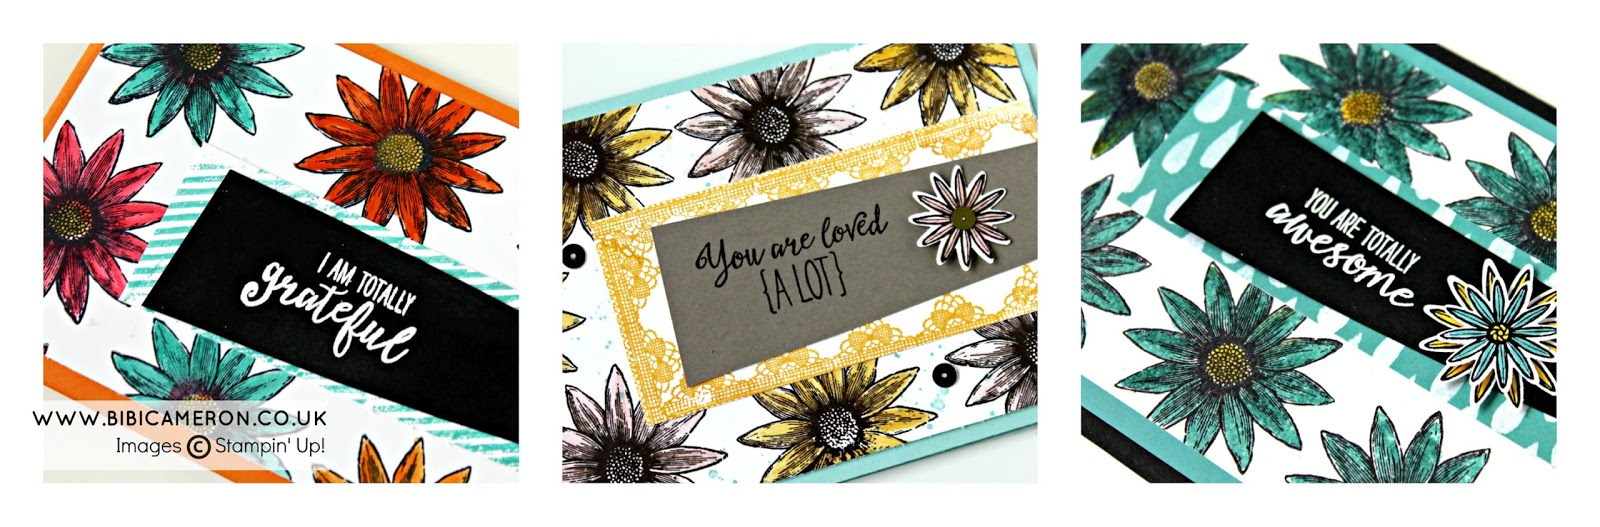 GRATEFUL BUNCH STAMPIN' UP! THANK YOU CARDS IDEA IN 3 DIFFERENT COLOUR COMBOS